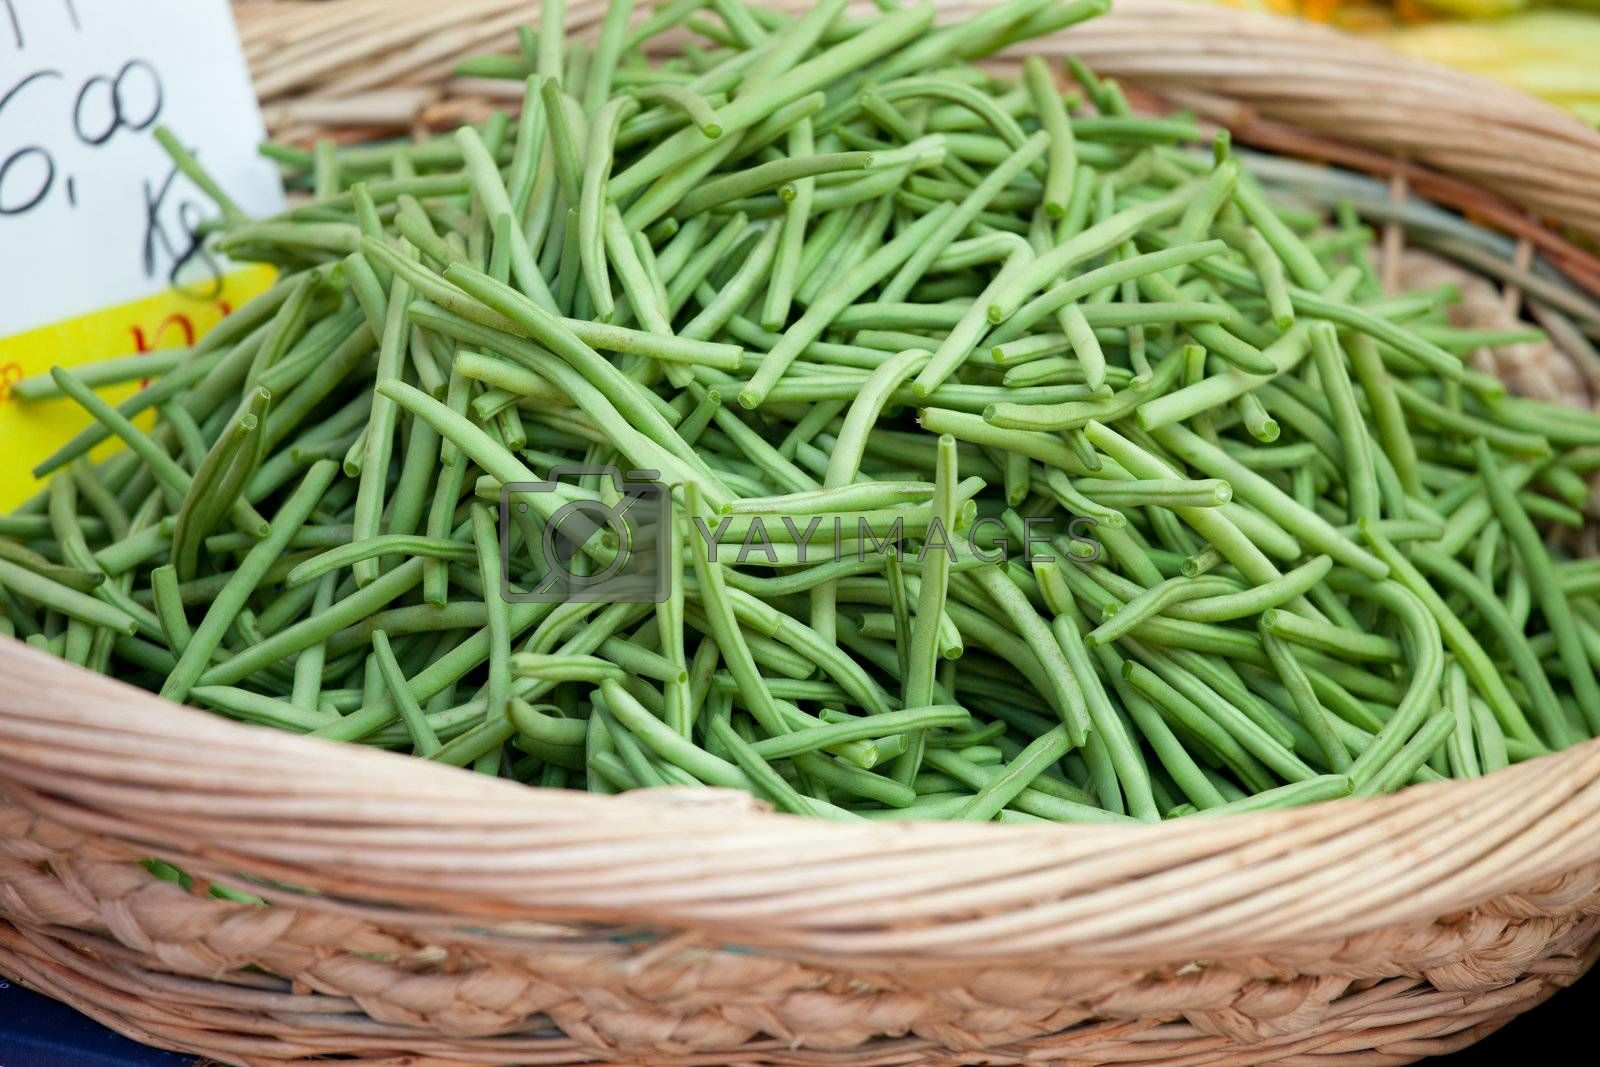 Green string beans in woven basket close-up by SergeyAK